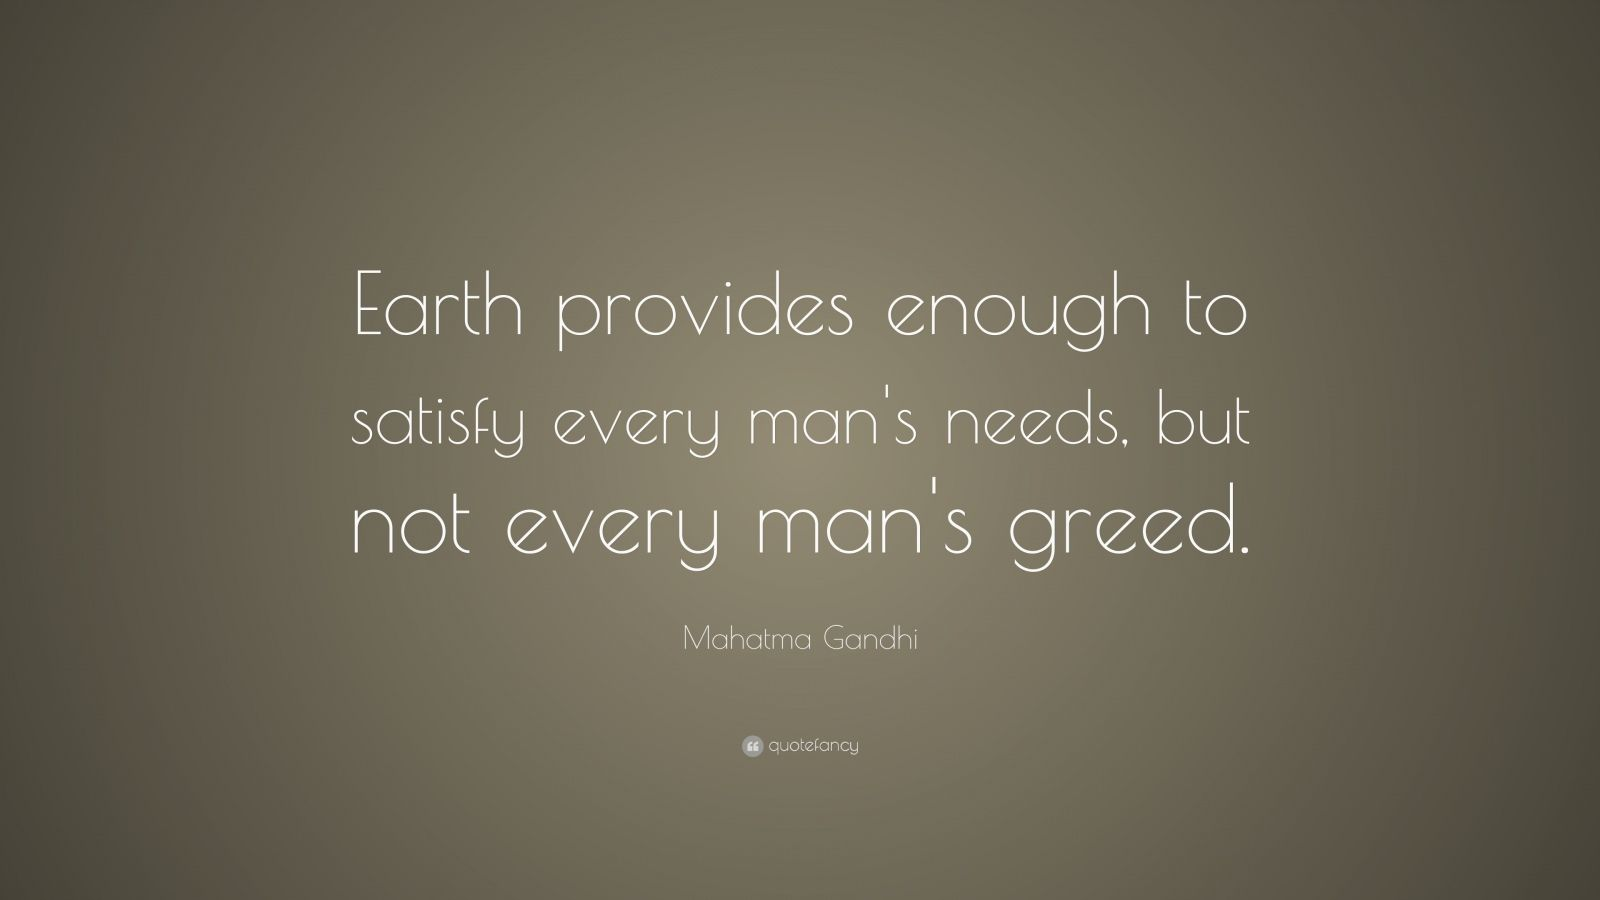 The Earth provides enough to meet everyone's needs